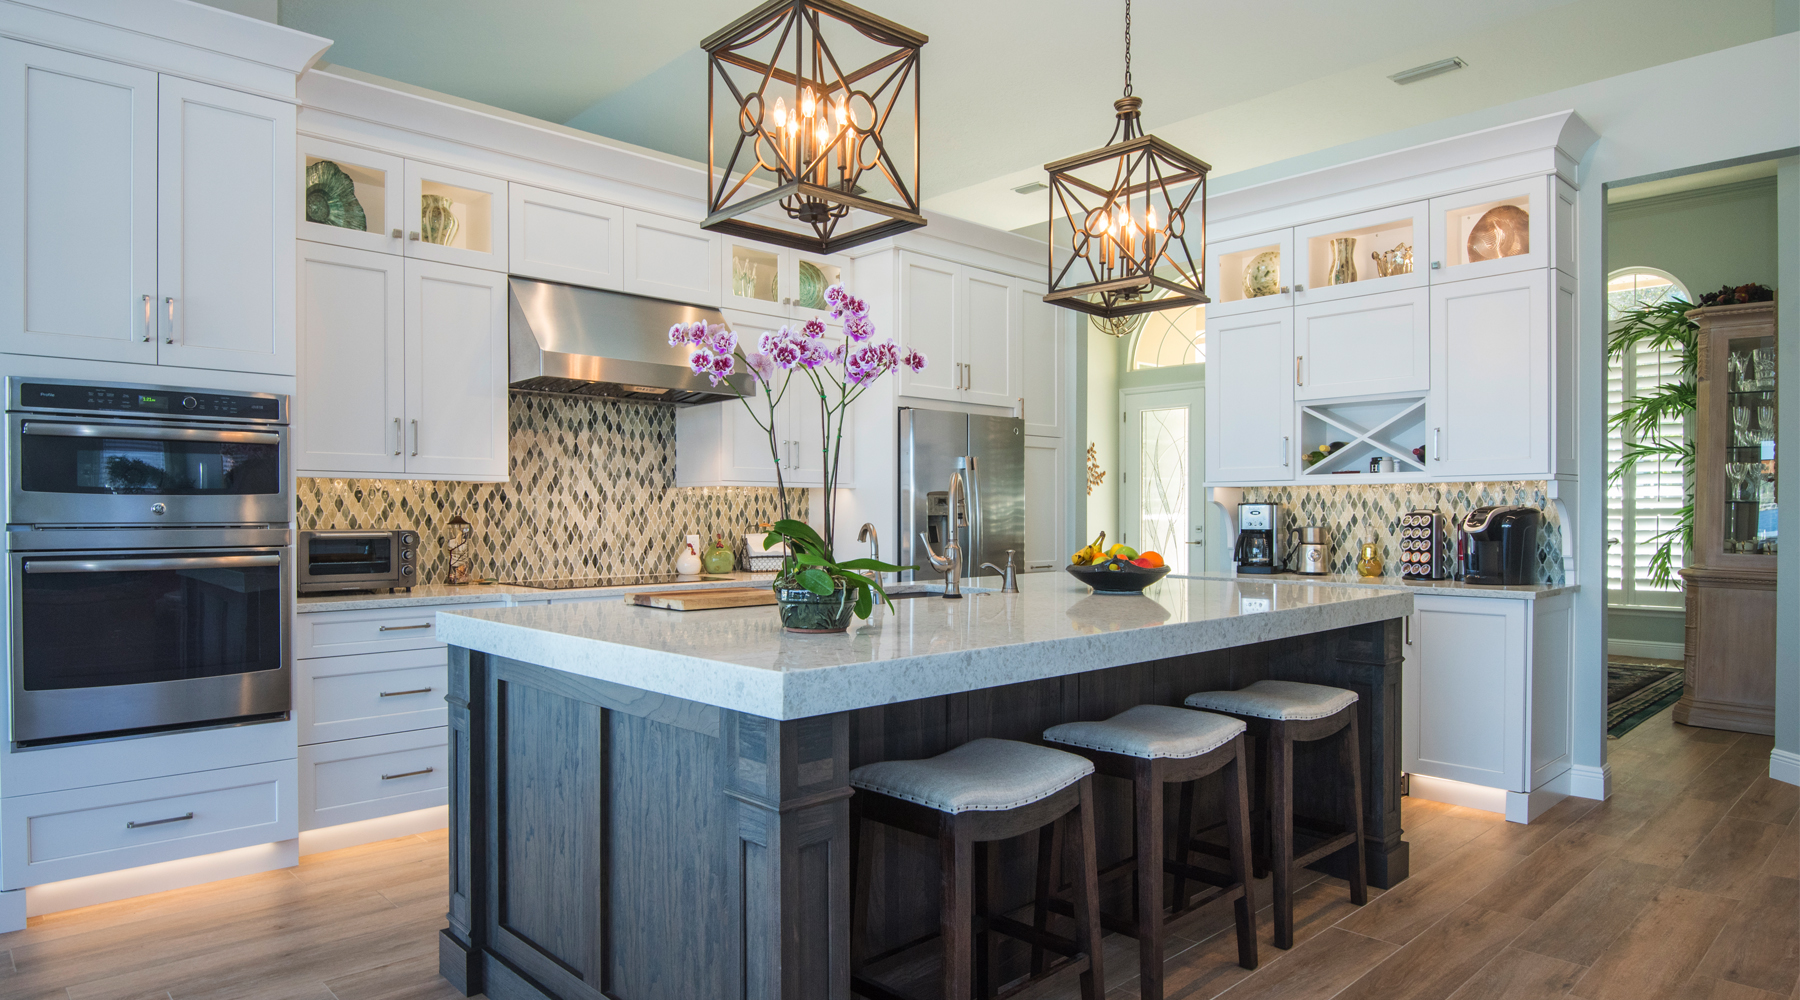 Bath & Kitchen Remodeling Orlando